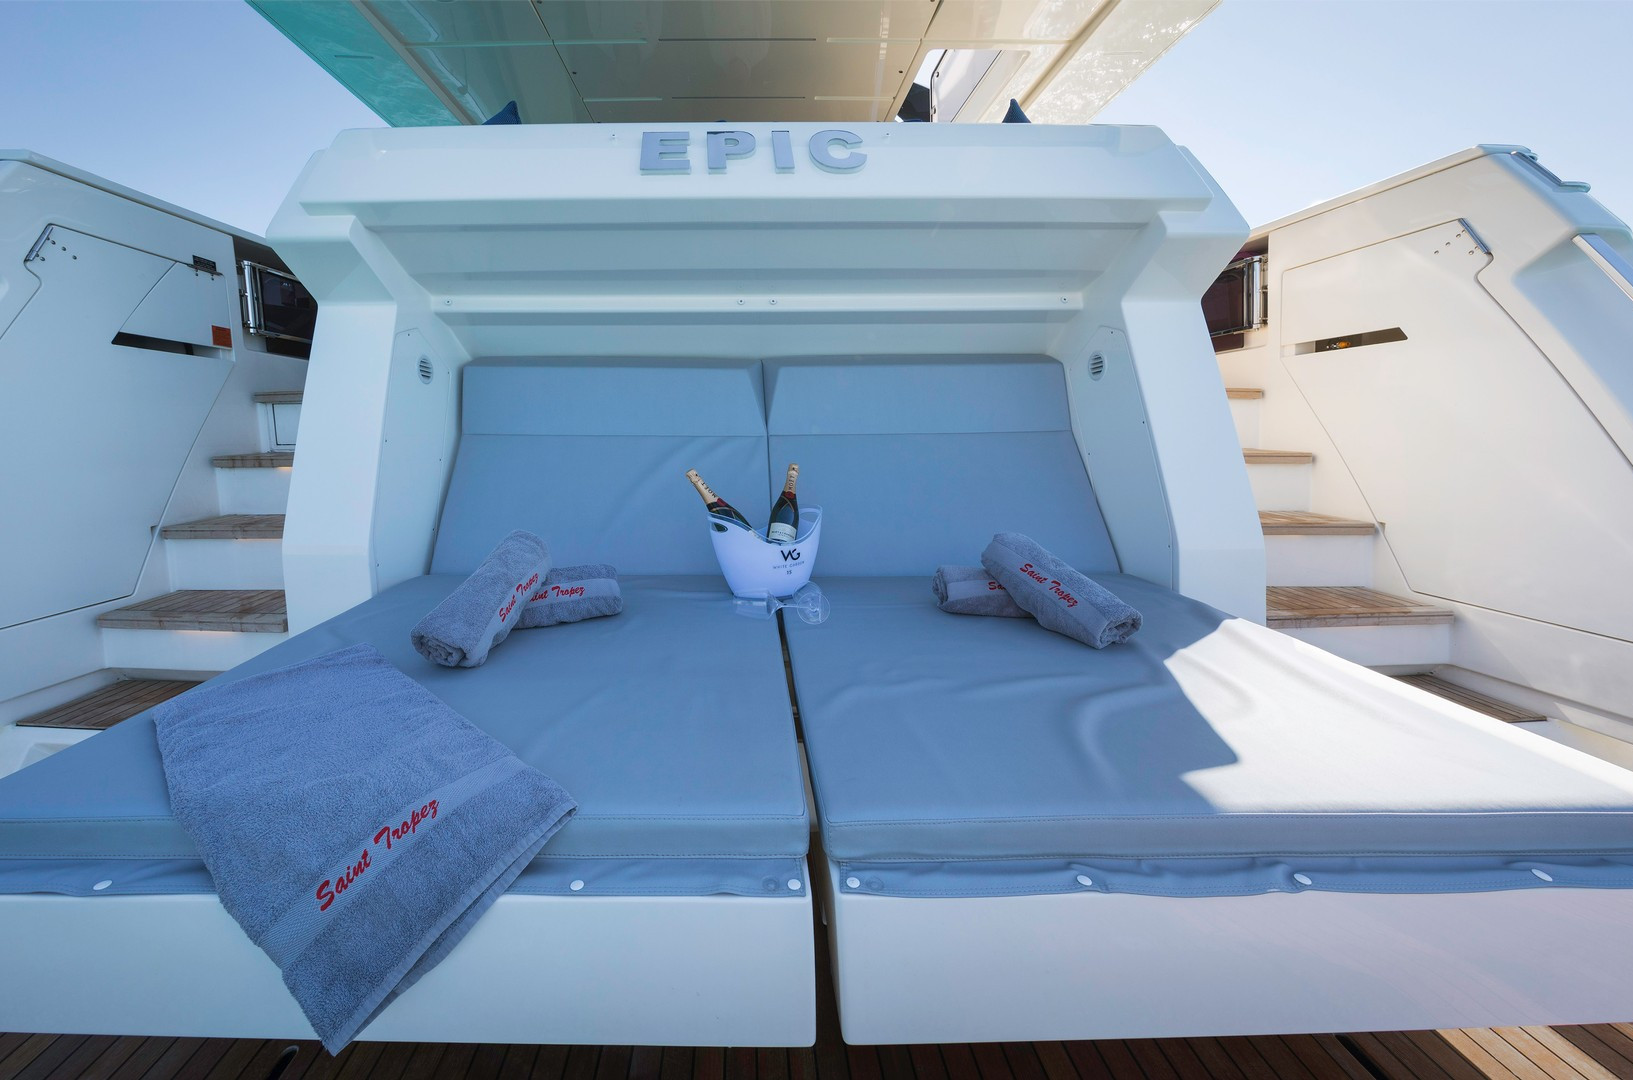 Yacht EPIC - mini-beach club sun loungers